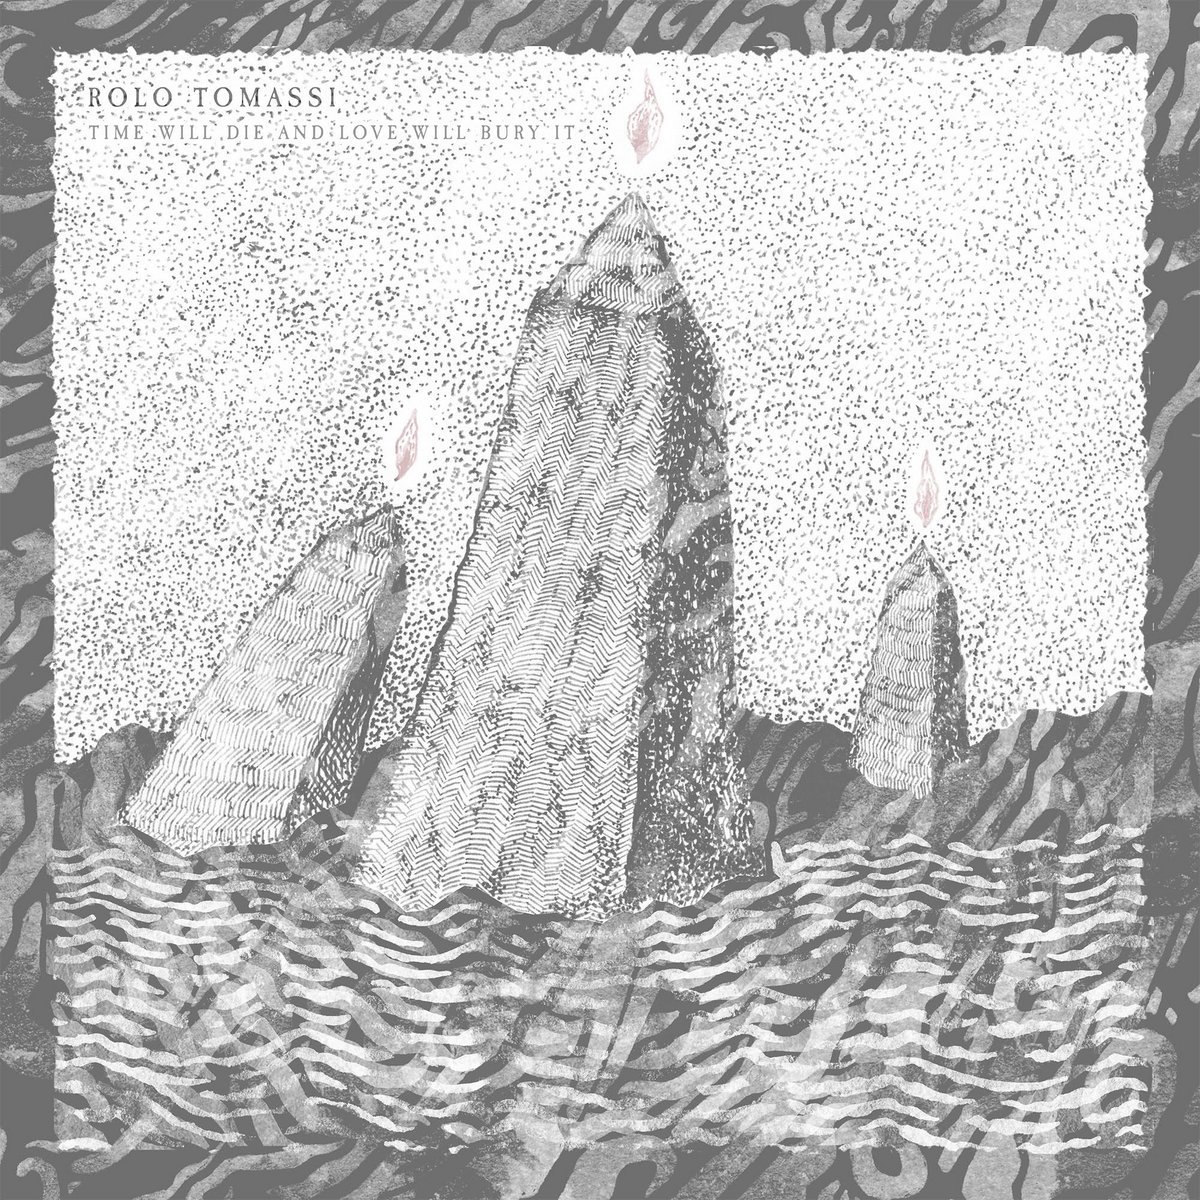 Rolo Tomassi: Time Will Die and Love Will Bury It